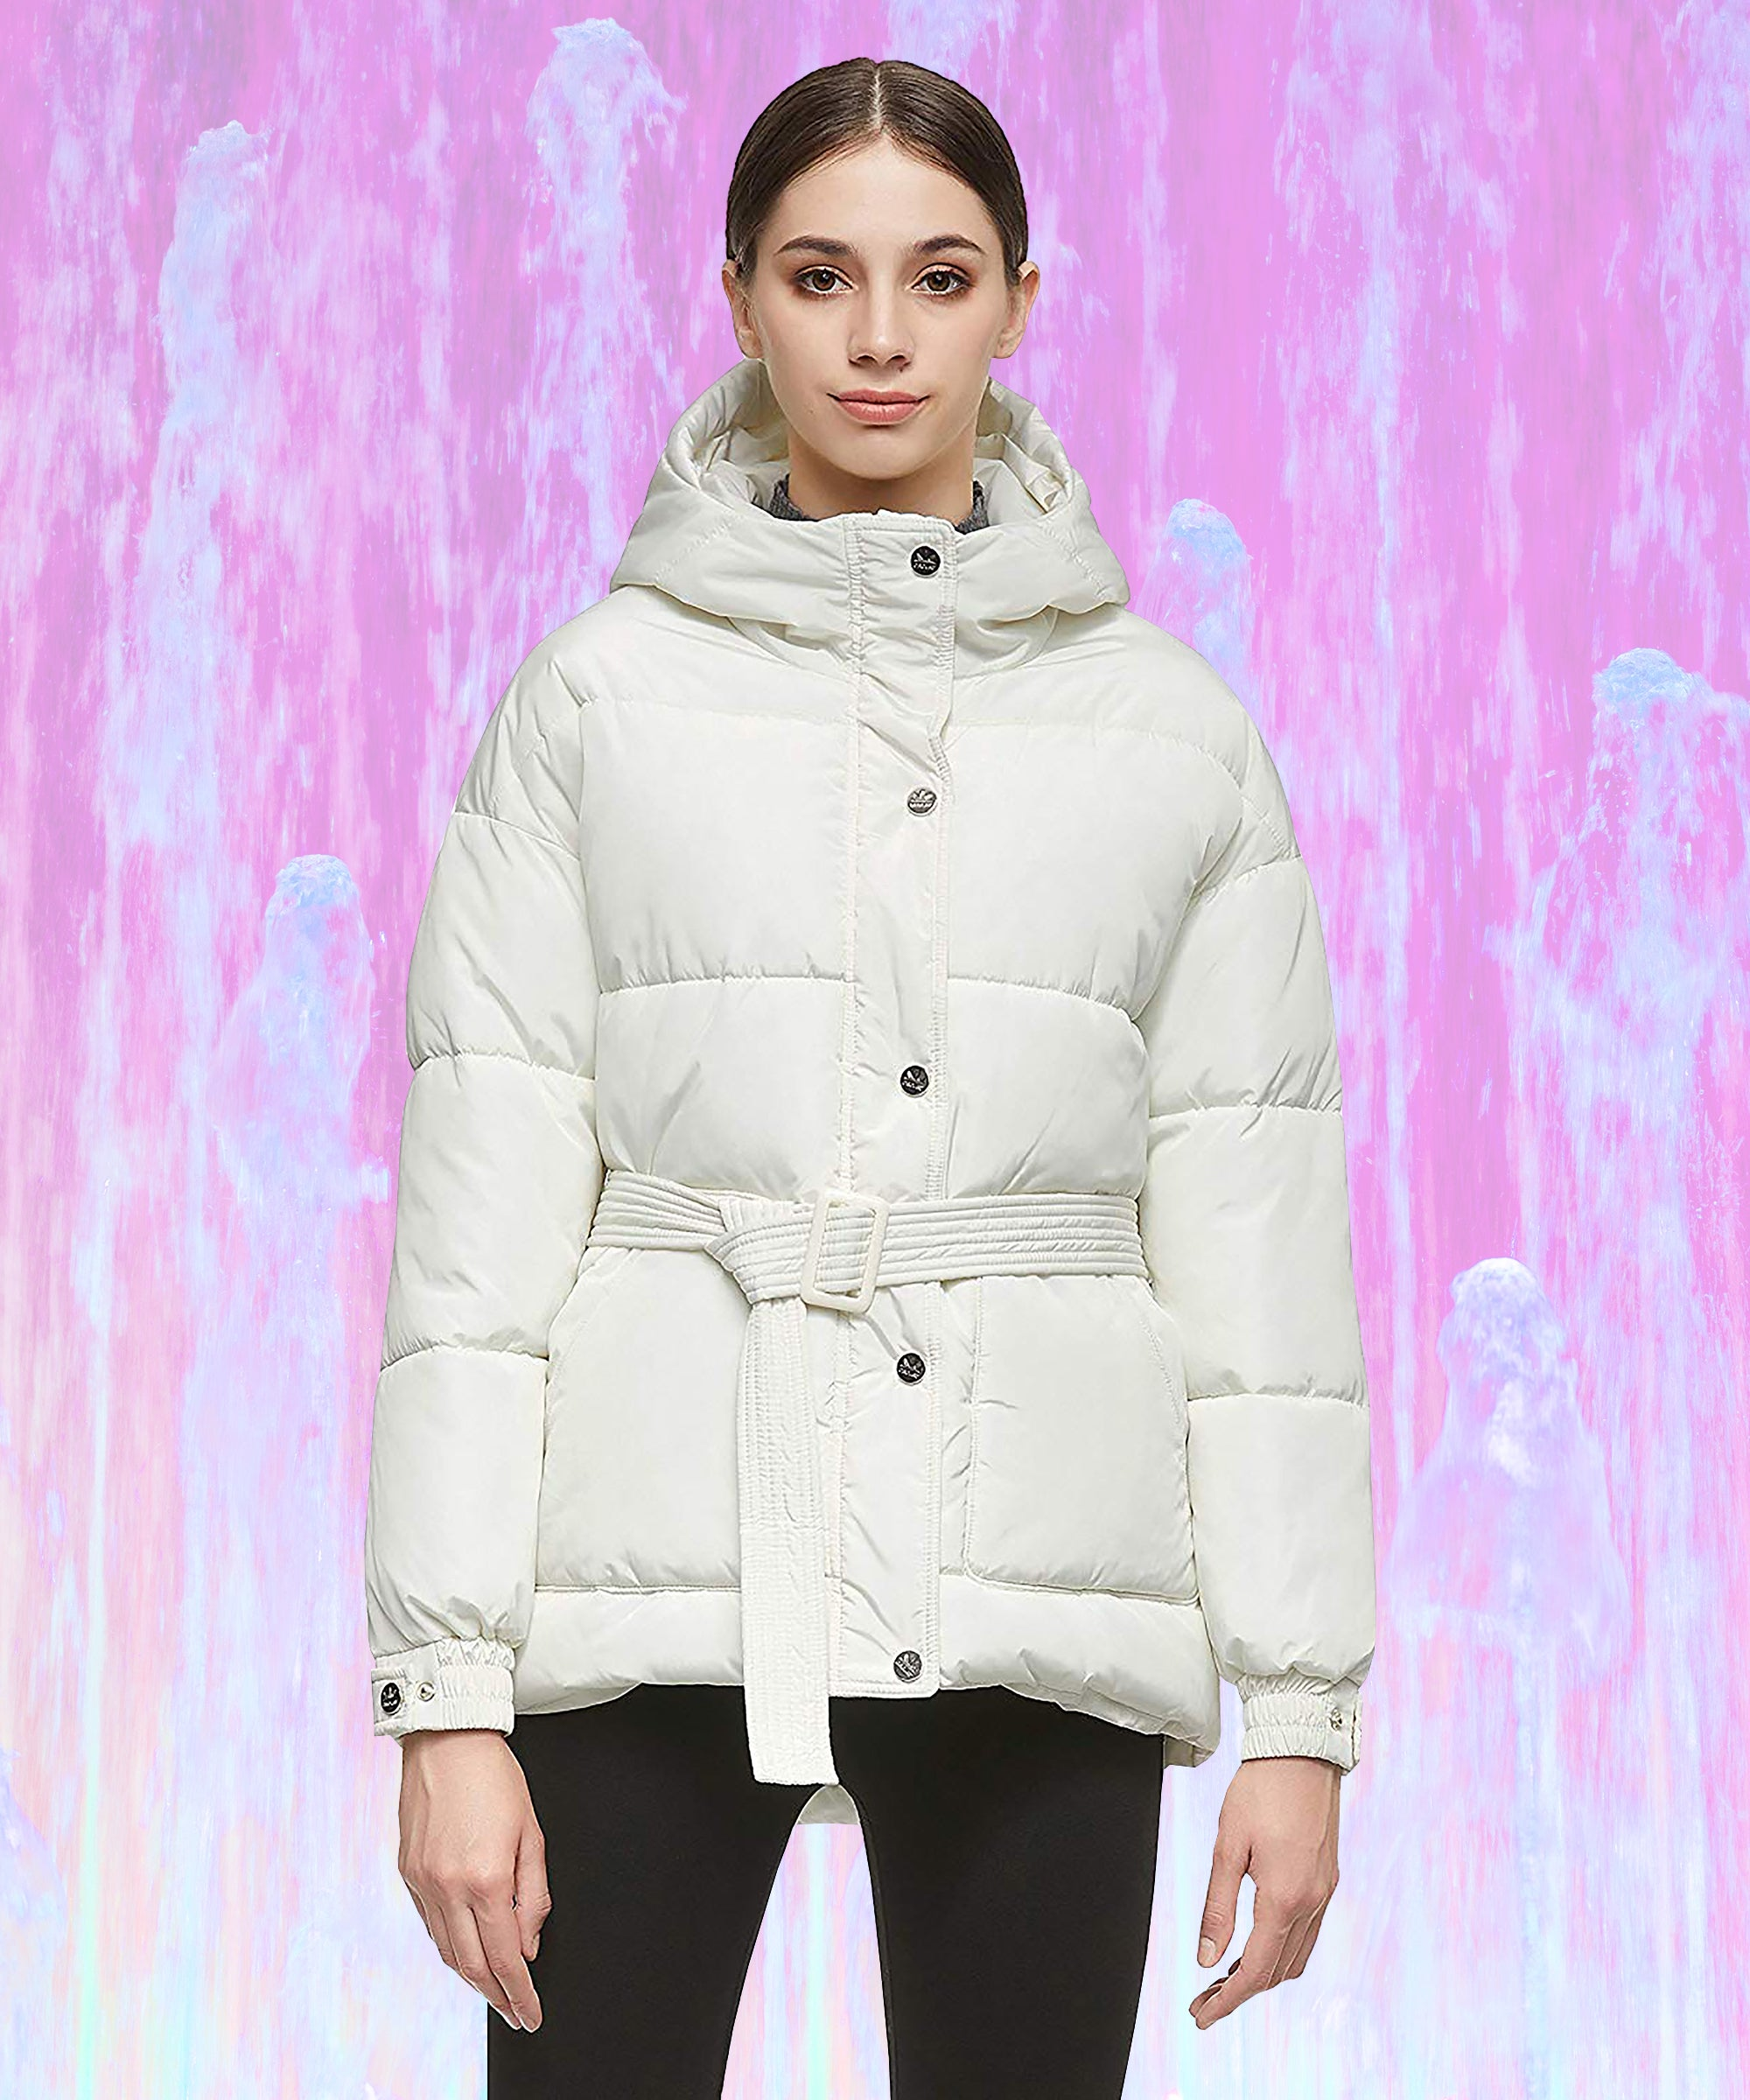 Amazon's Orolay Puffer Coat Has New Designs